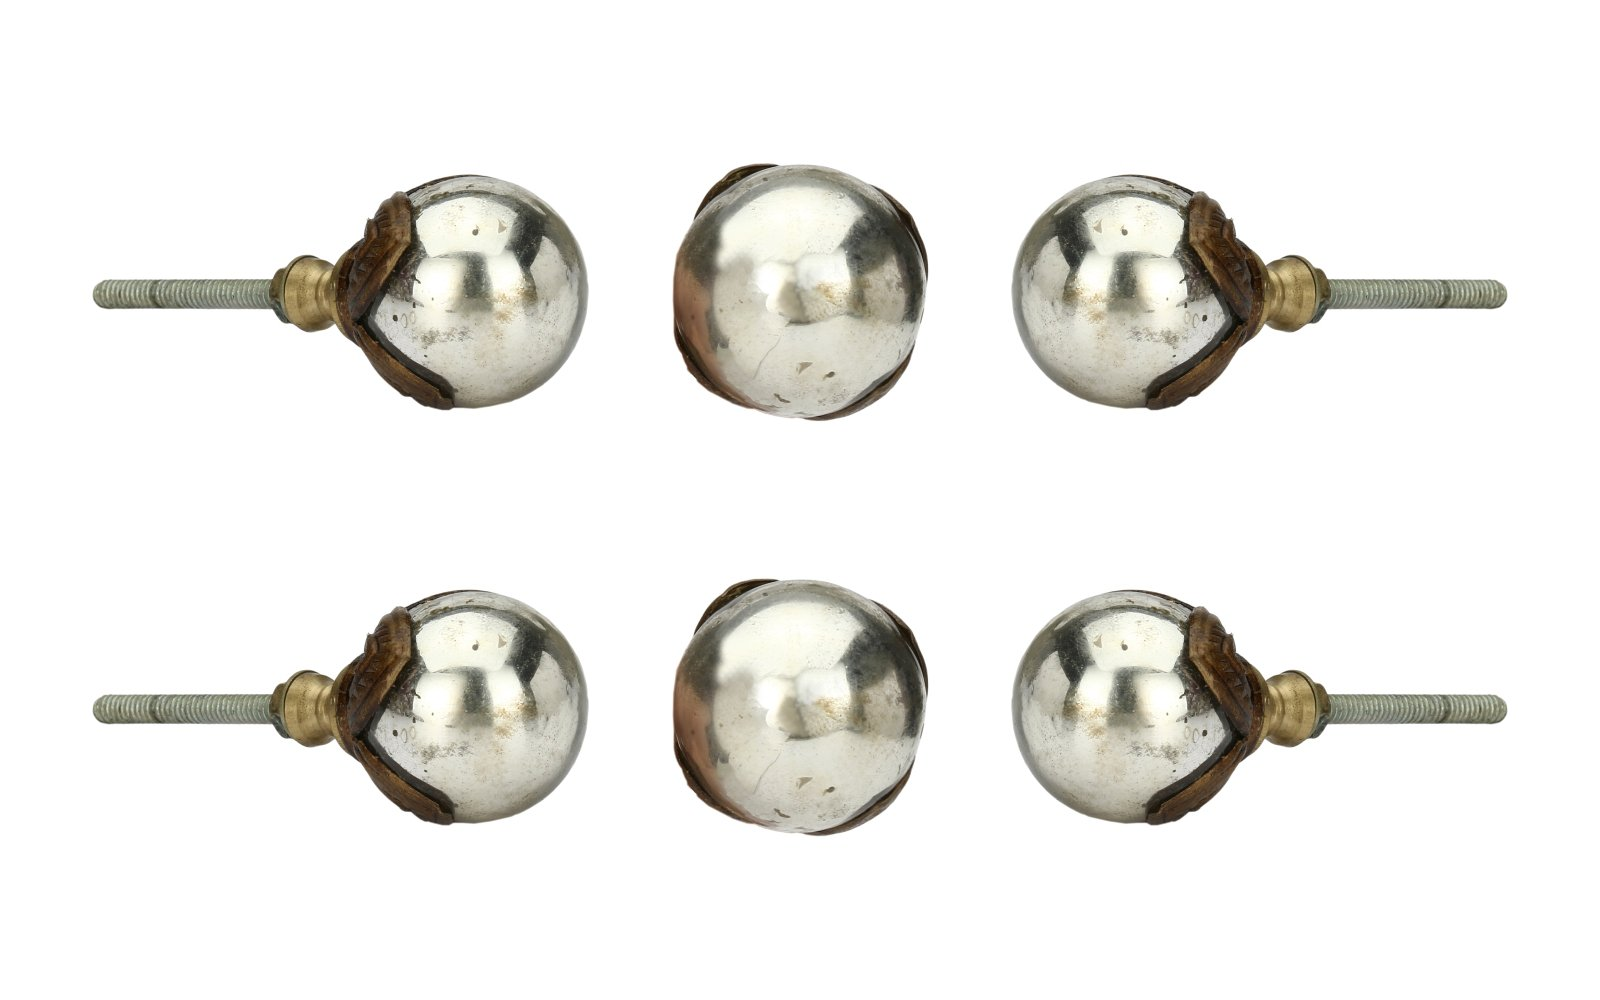 Set of 6 Silver Antique Knobs Kitchen Cabinet Cupboard Door Knobs Dresser Wardrobe and Drawer Pull 2.16 gm By Perilla Home